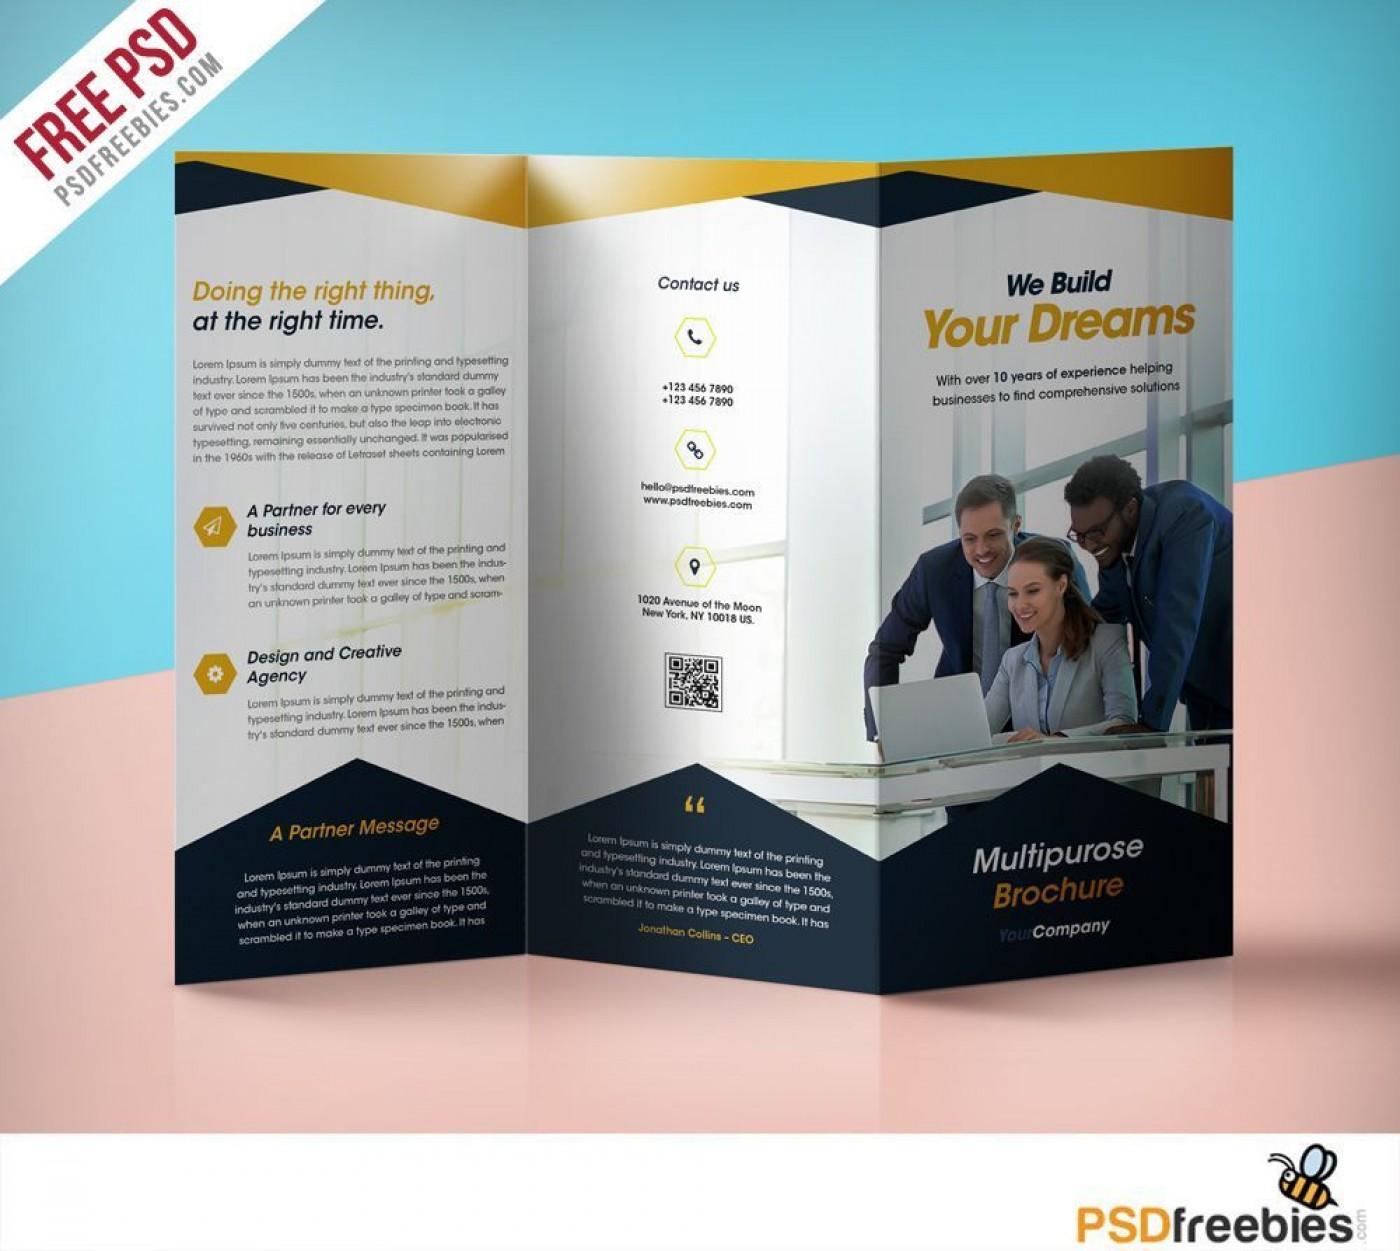 001 Staggering Adobe Photoshop Brochure Template Free Download Idea 1400